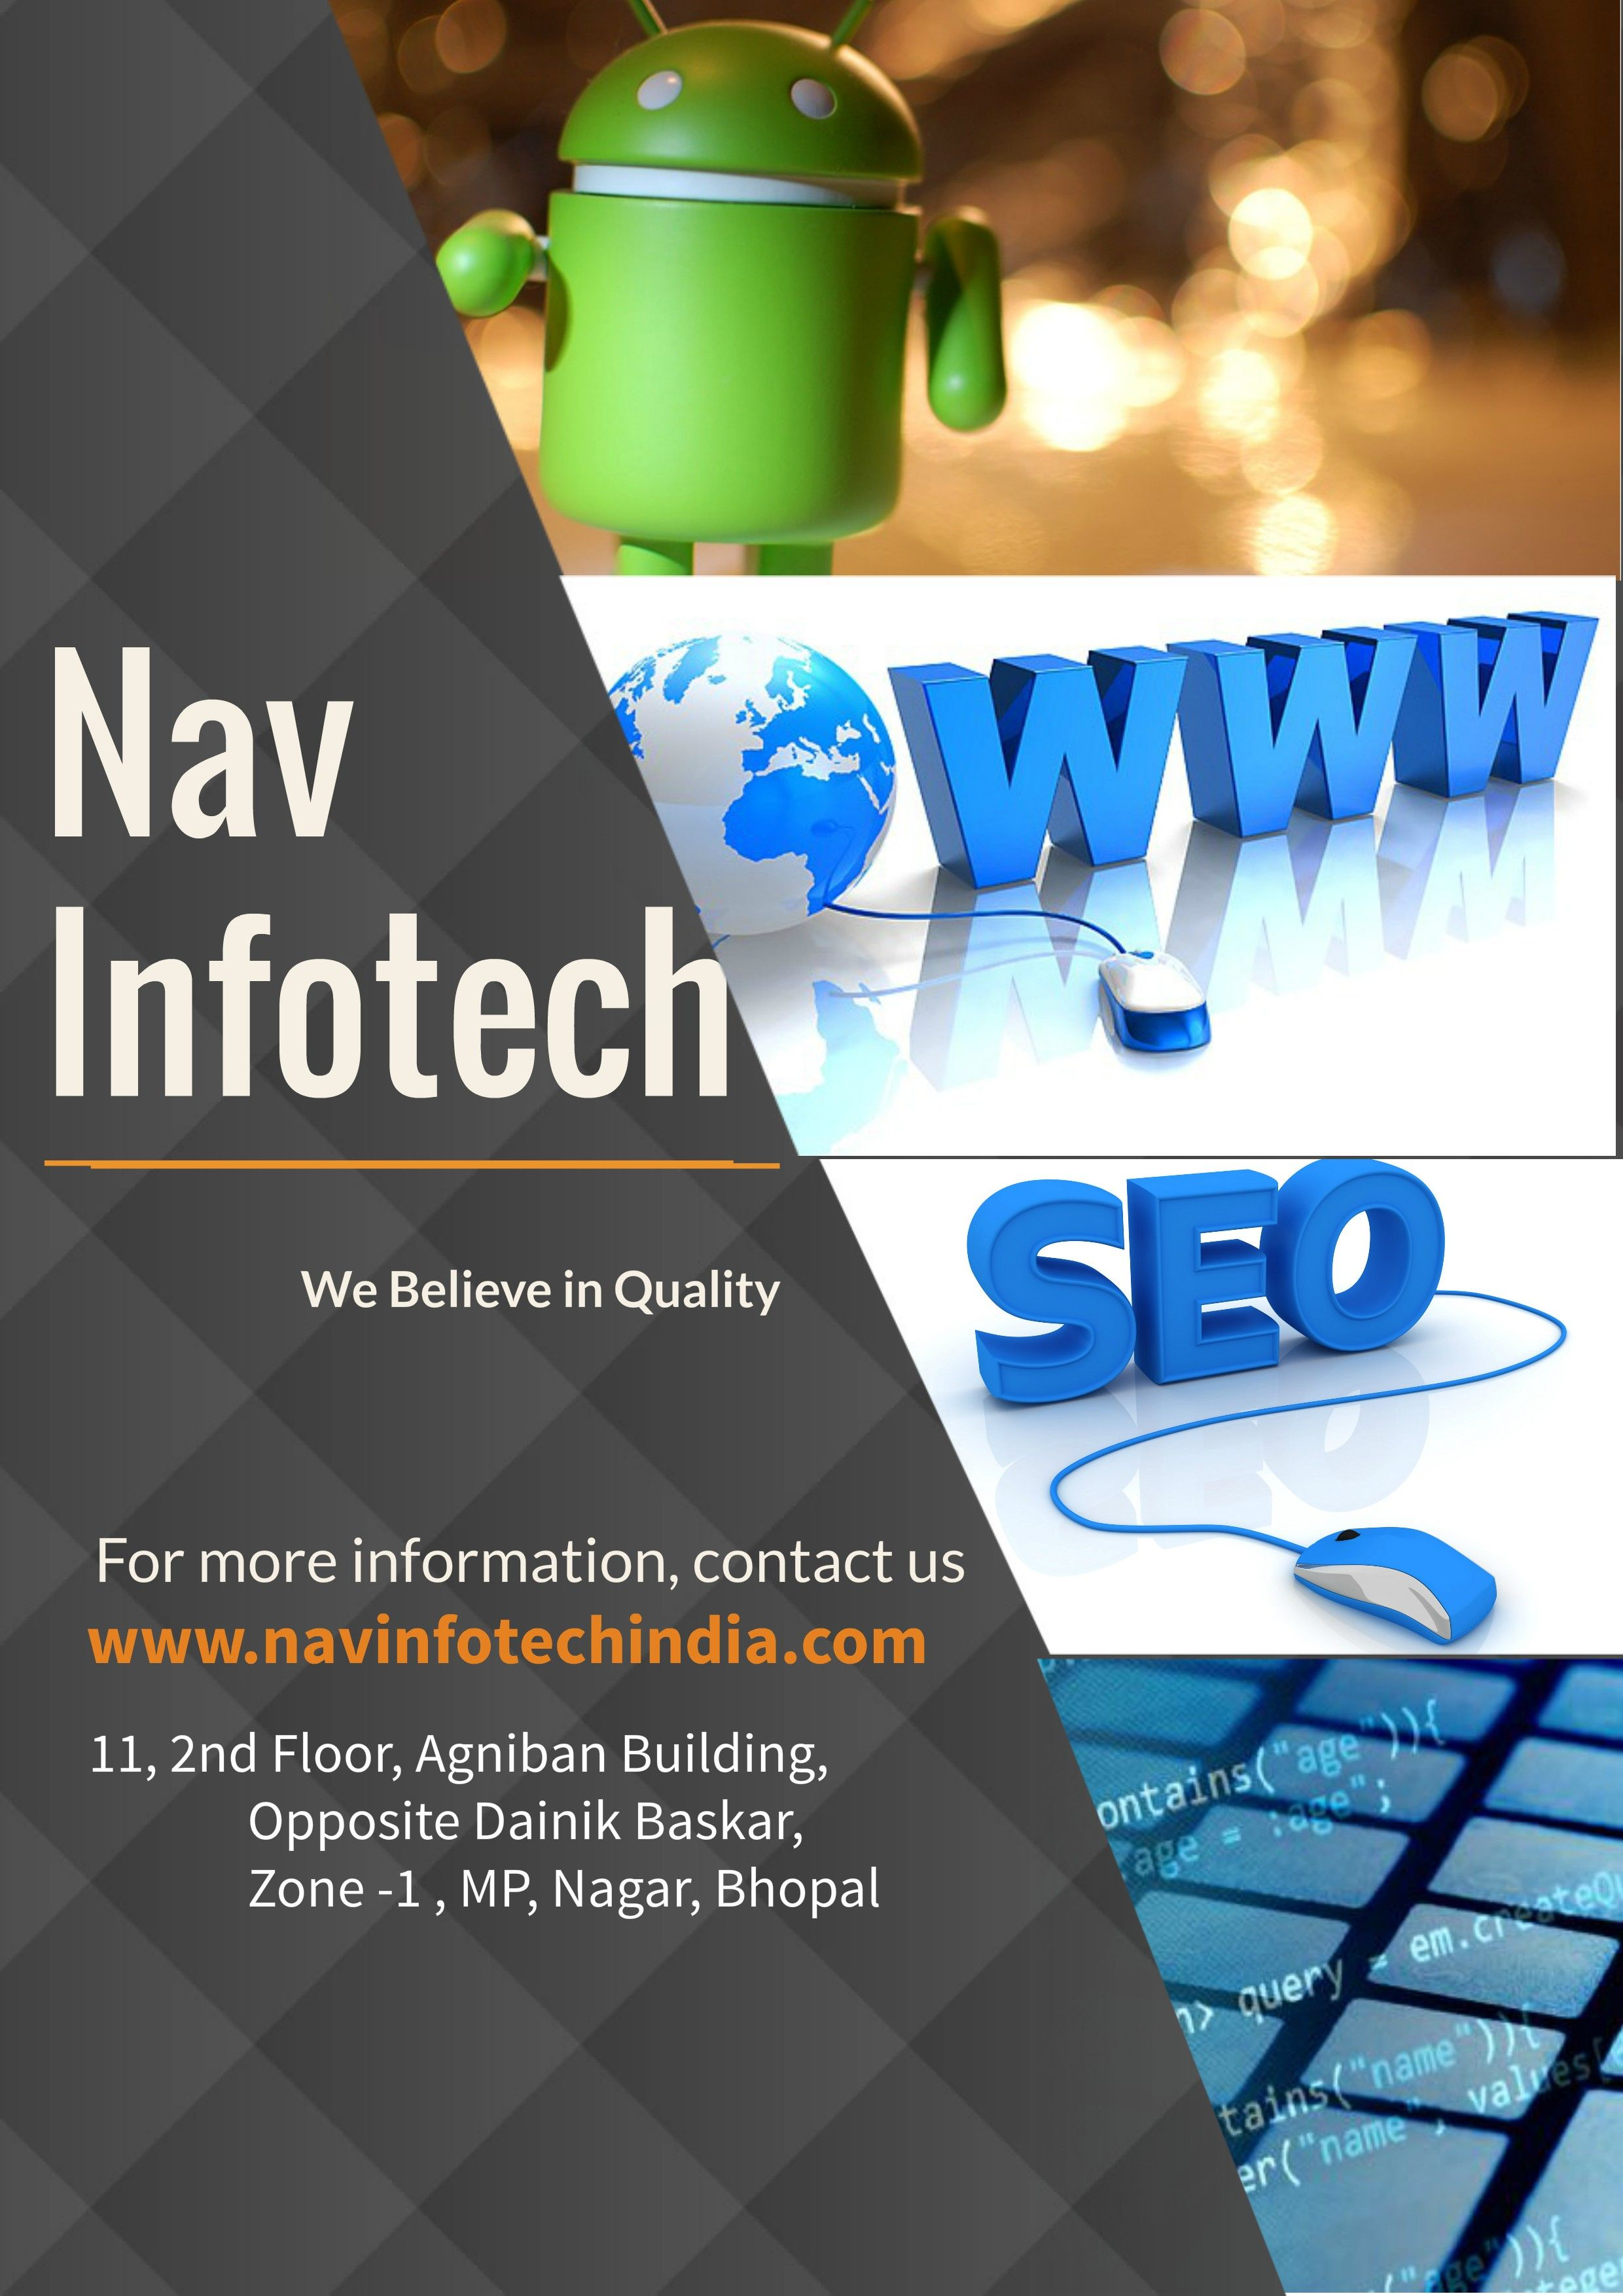 Nav InfoTech vision is to be a trusted and reliable IT